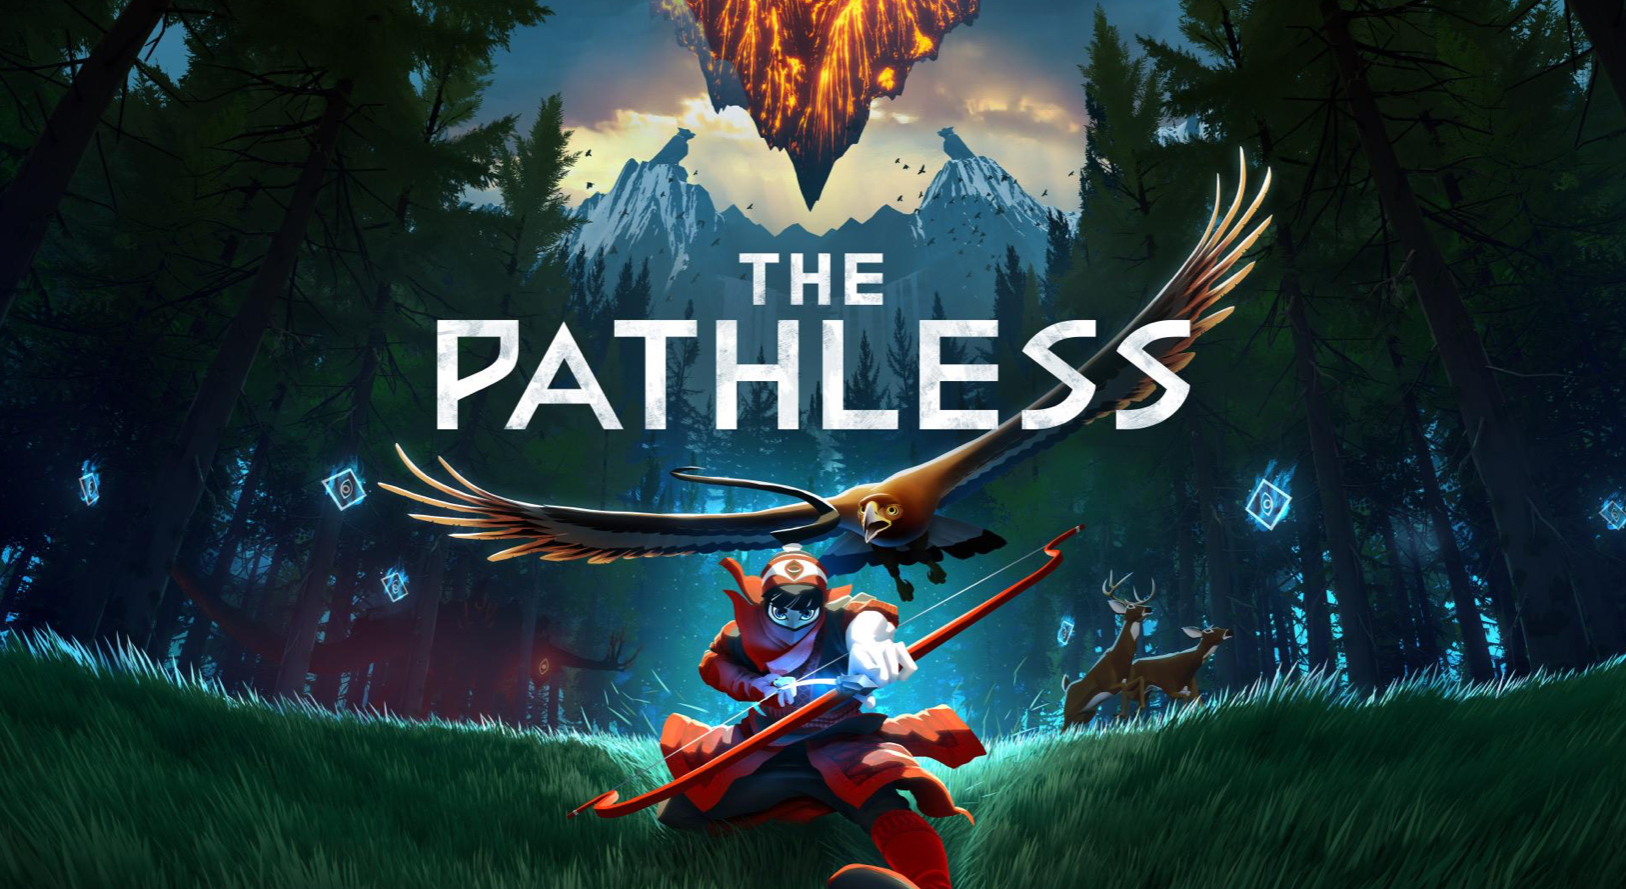 'The Pathless' from Giant Squid and Annapurna Interactive Finally Has a Confirmed Release Date for Apple Arcade, PS5, PS4, and PC